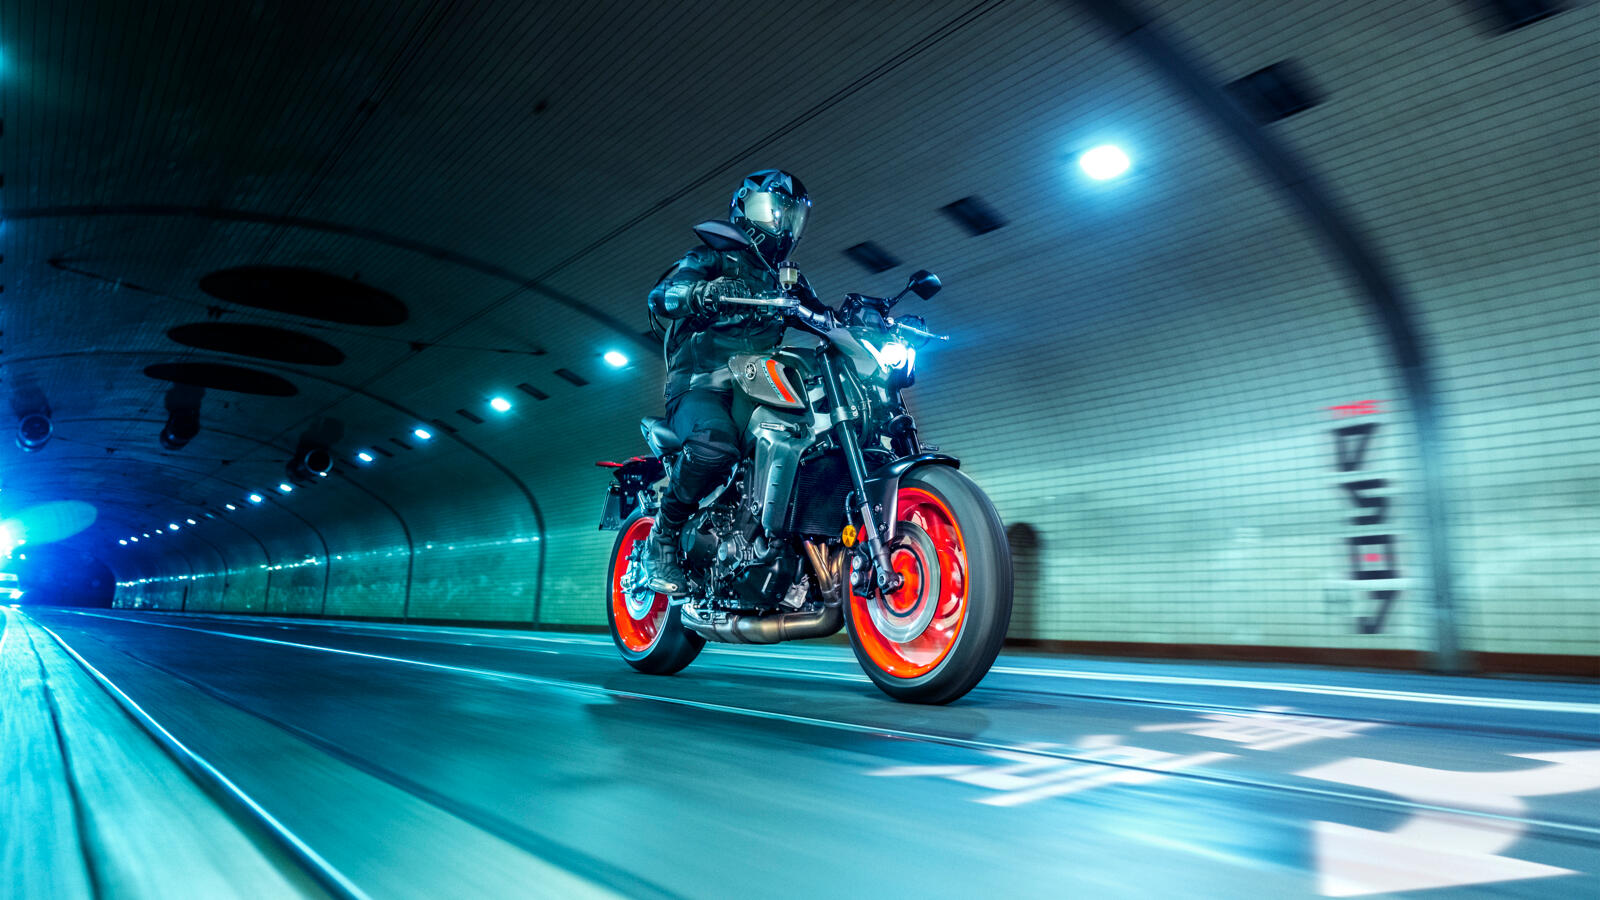 2021 Yamaha MT-09 Revealed: Lighter, Quicker And Better Equipped Than Before!